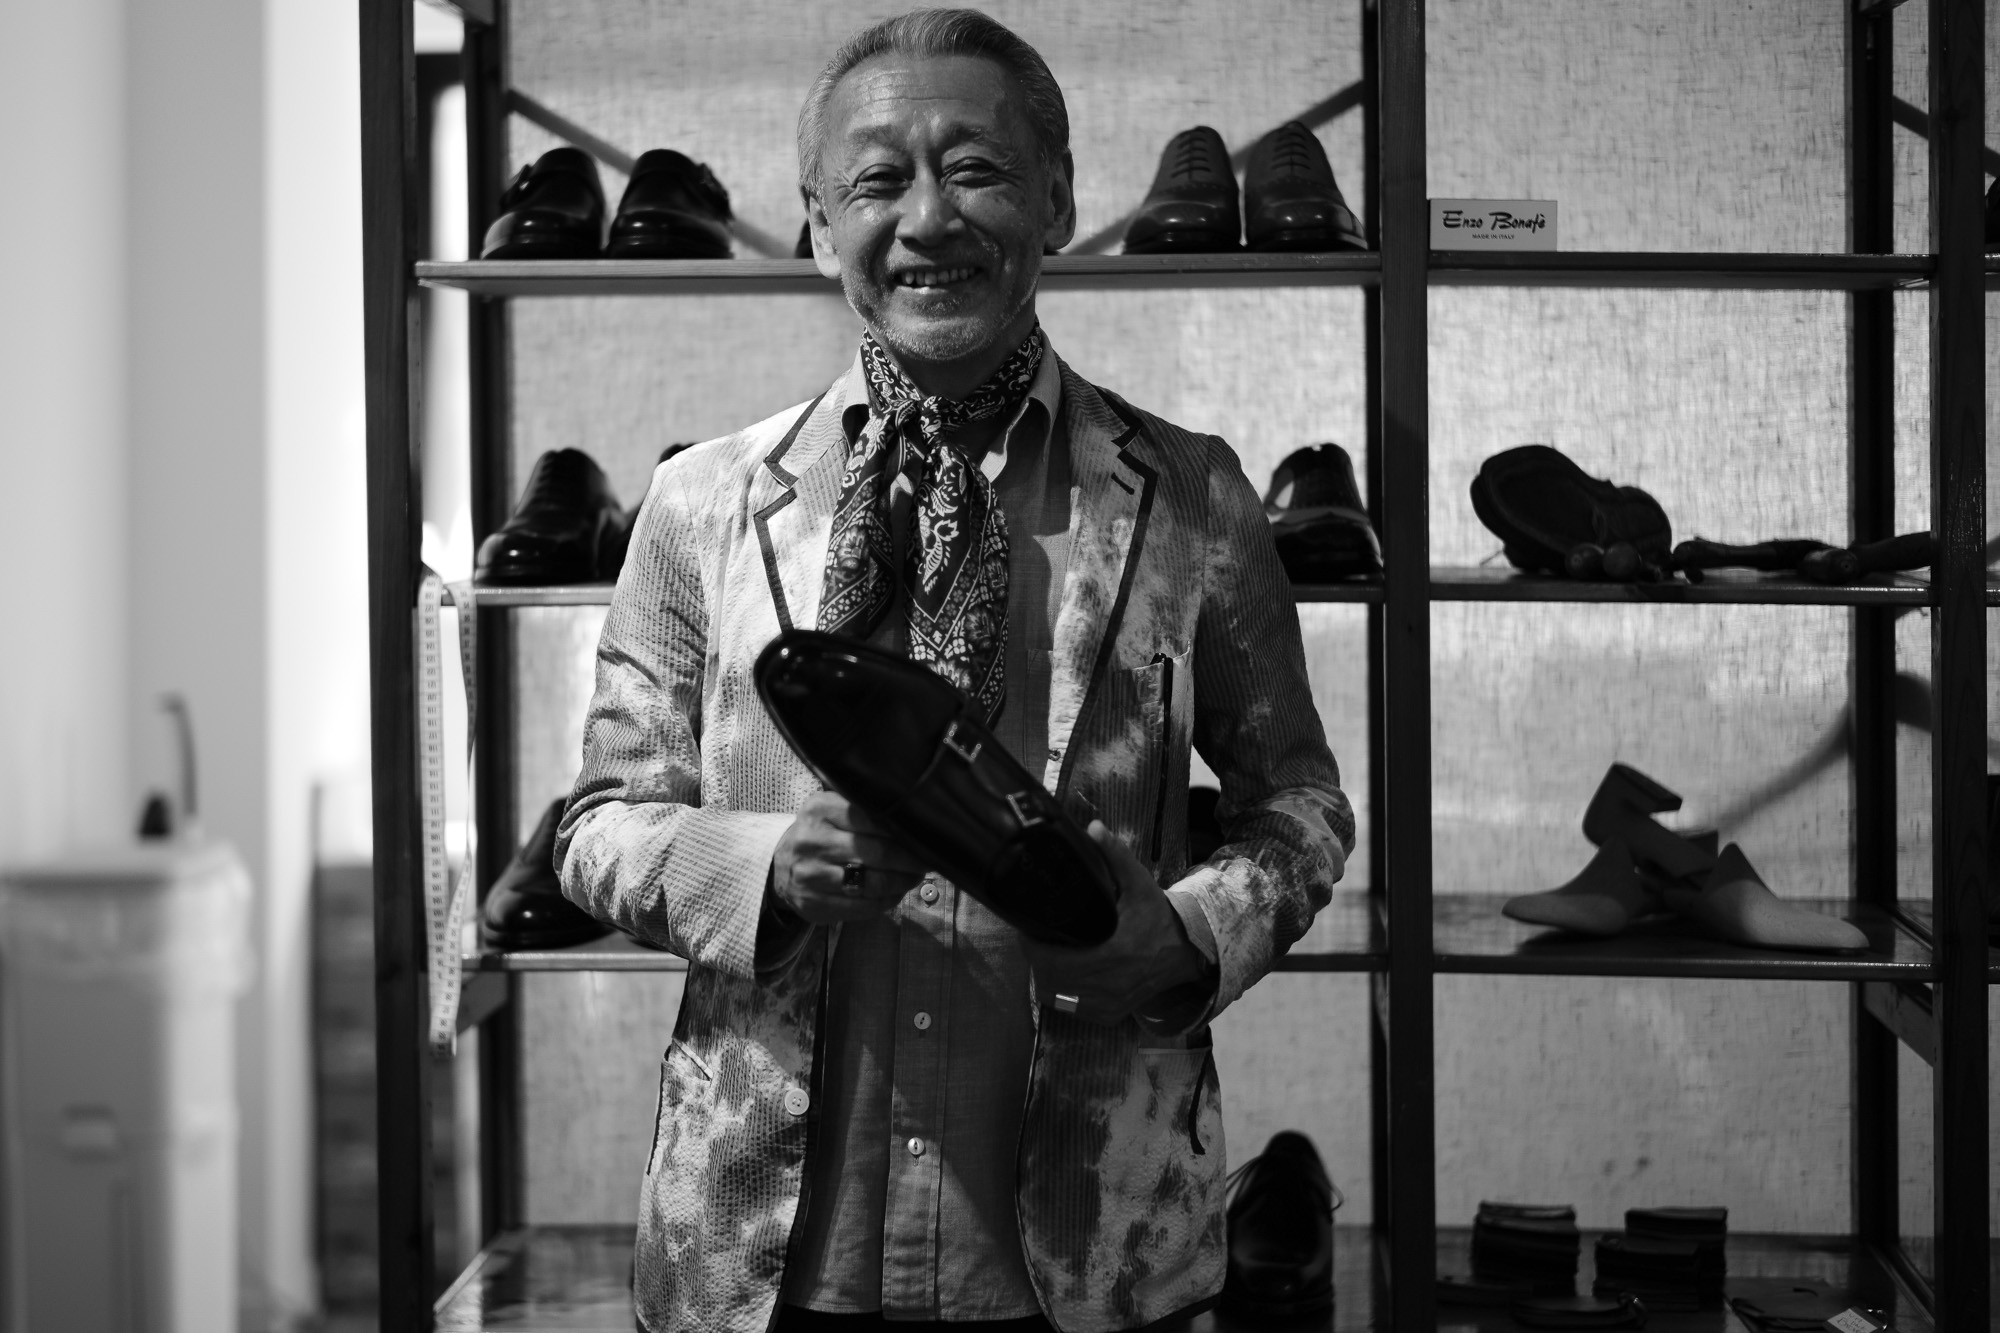 ENZO BONAFE / エンツォボナフェ 2017 Autumn/Winter Special Model 【ENZO BONAFE×HIROSHI TSUBOUCHI×ZODIAC //// DOUBLE MONK STRAP SHOES //// Bonaudo Museum Calf Leather.Pewper ////  NORVEGESE】 enzobonafe ヒロシツボウチ コラボモデル ダブルモンク ノルベ ミュージアムカーフ 愛知 名古屋 ZODIAC ゾディアック